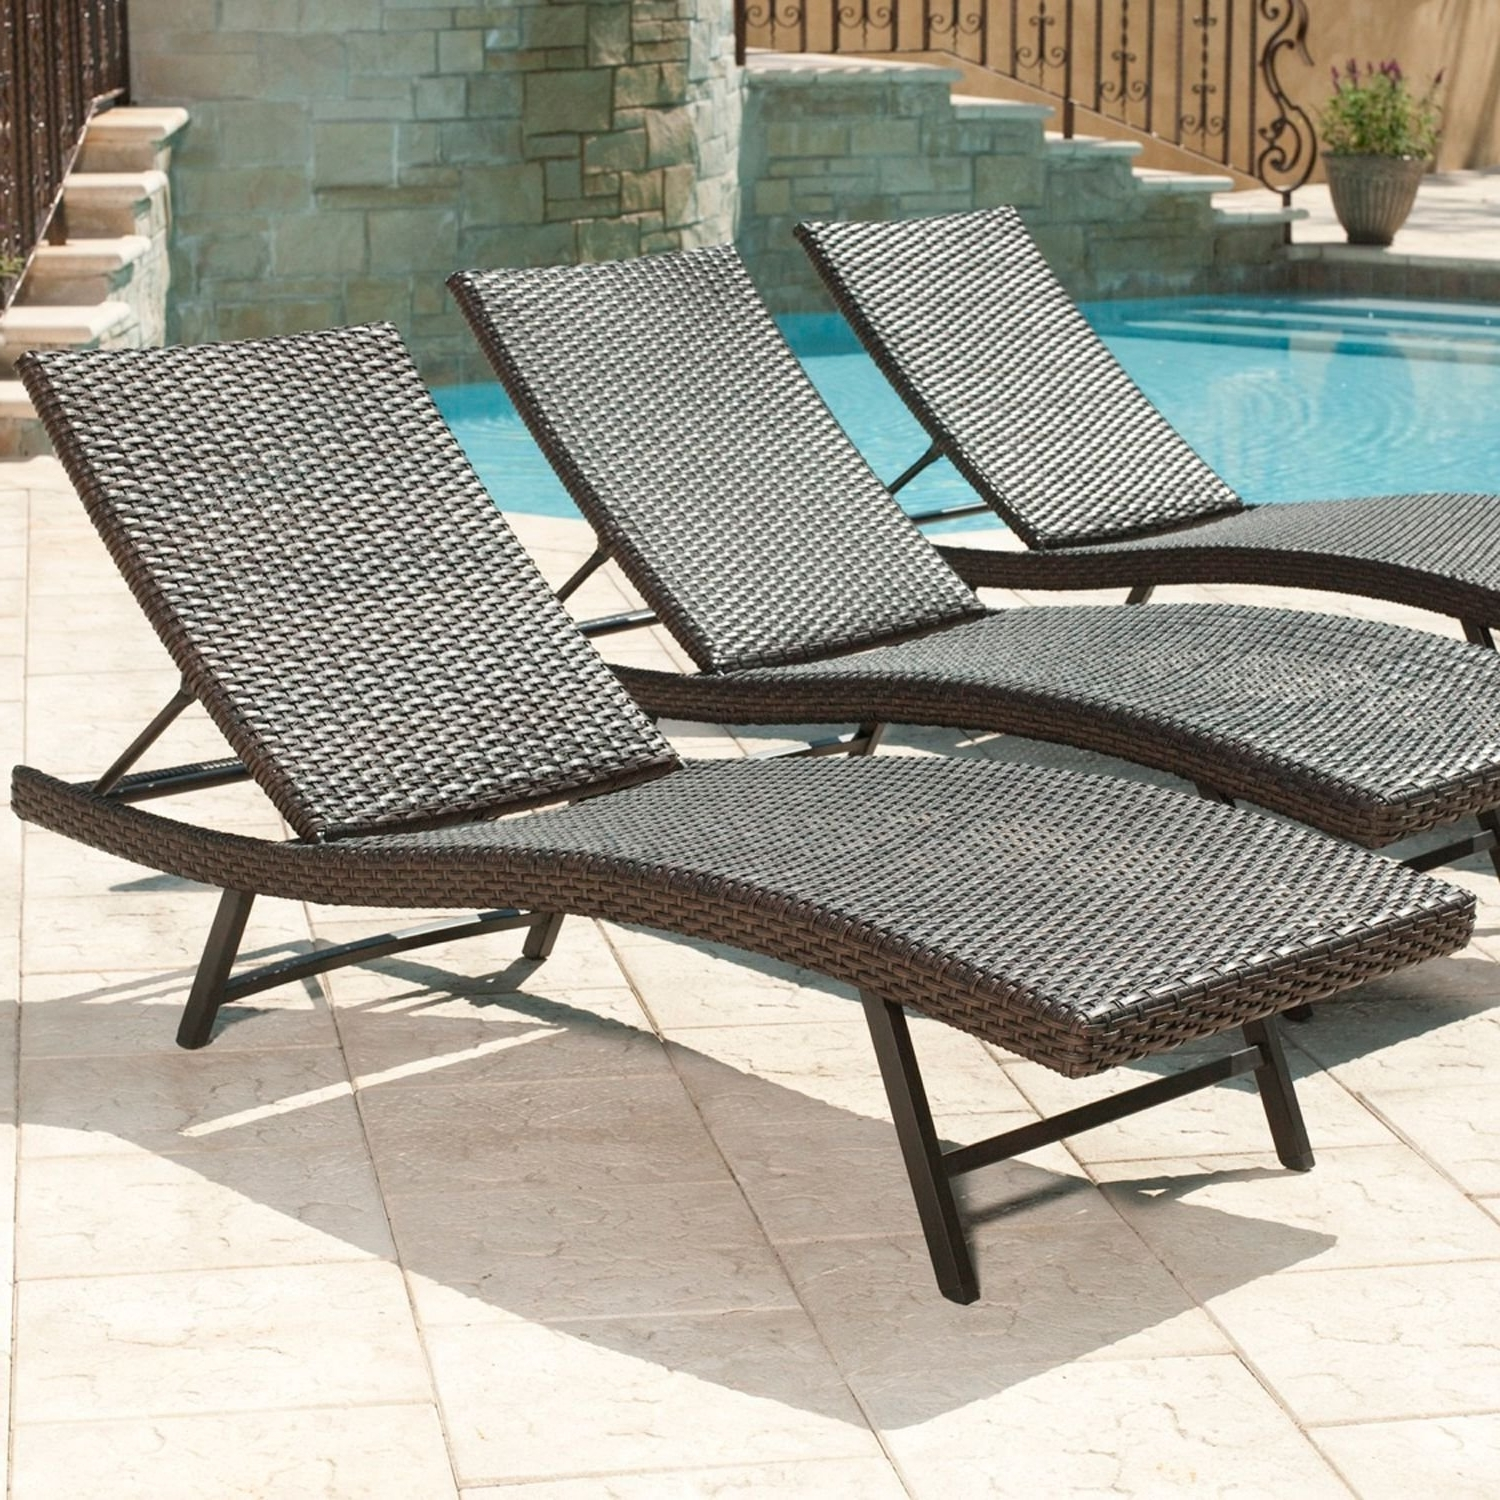 Amazon: Member's Mark« Heritage Chaise Lounge Chair: Garden Regarding Favorite Sam's Club Outdoor Chaise Lounge Chairs (View 4 of 15)